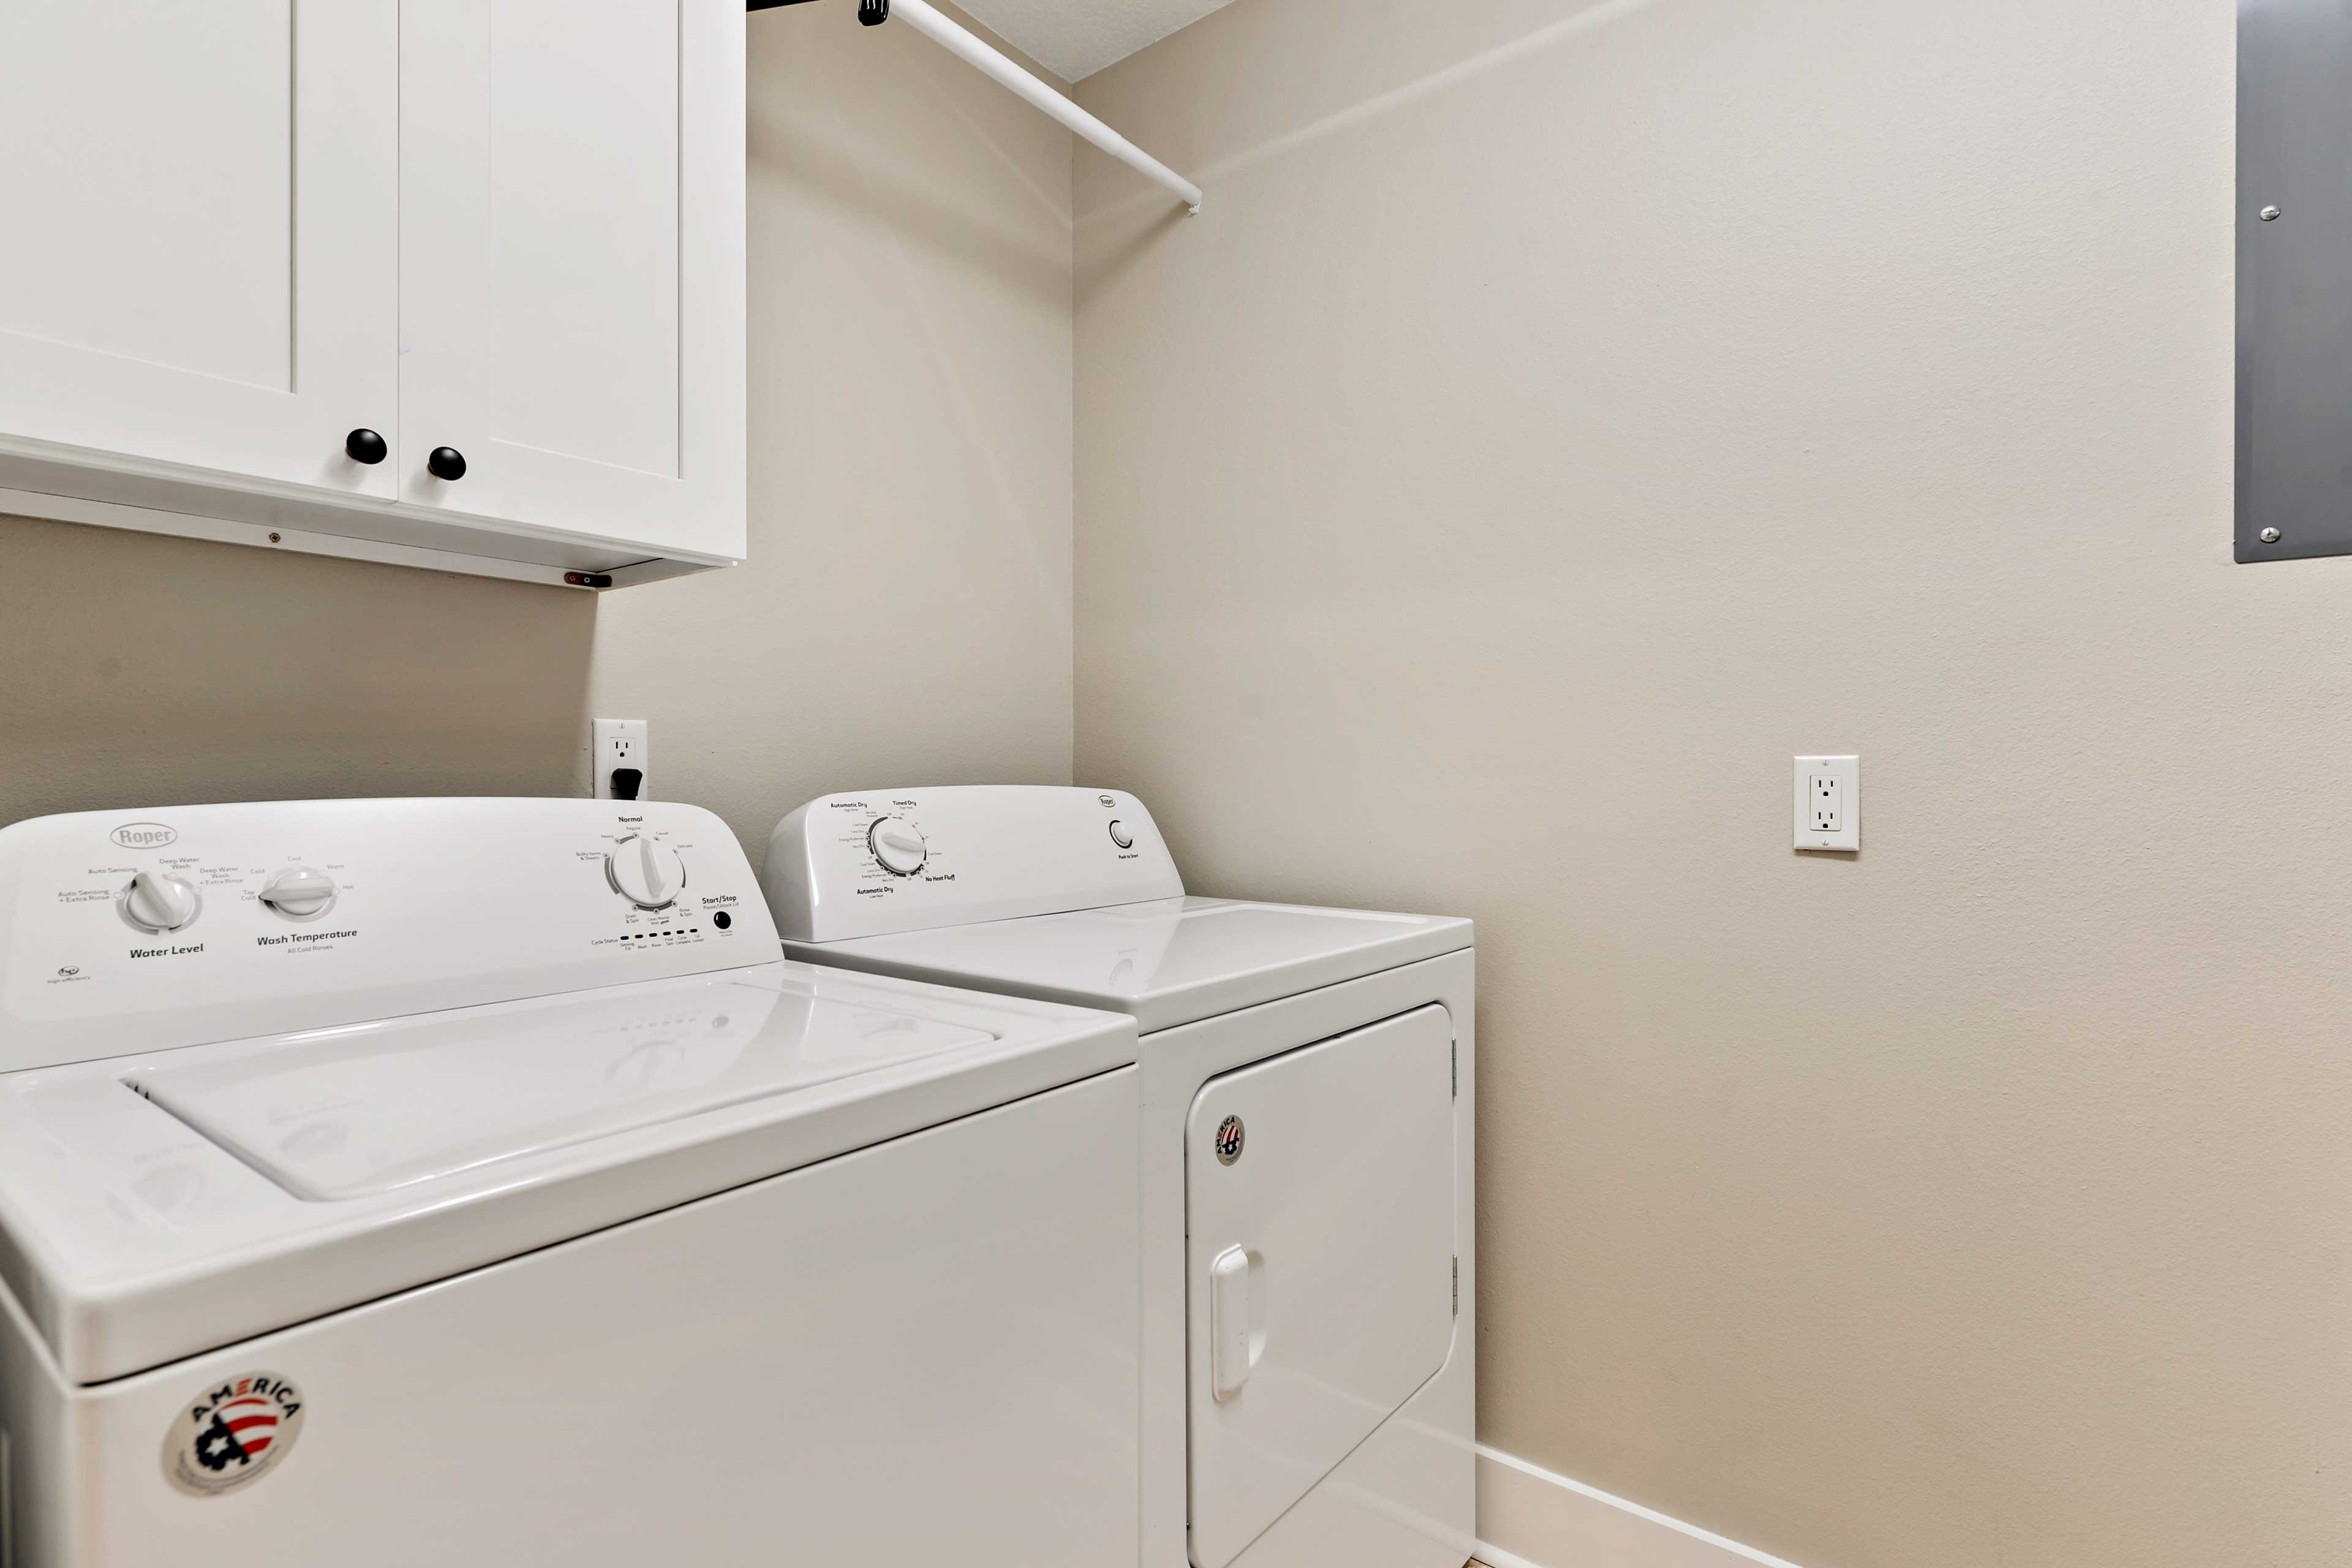 Laundry machines will keep your clothes smelling fresh during your stay.